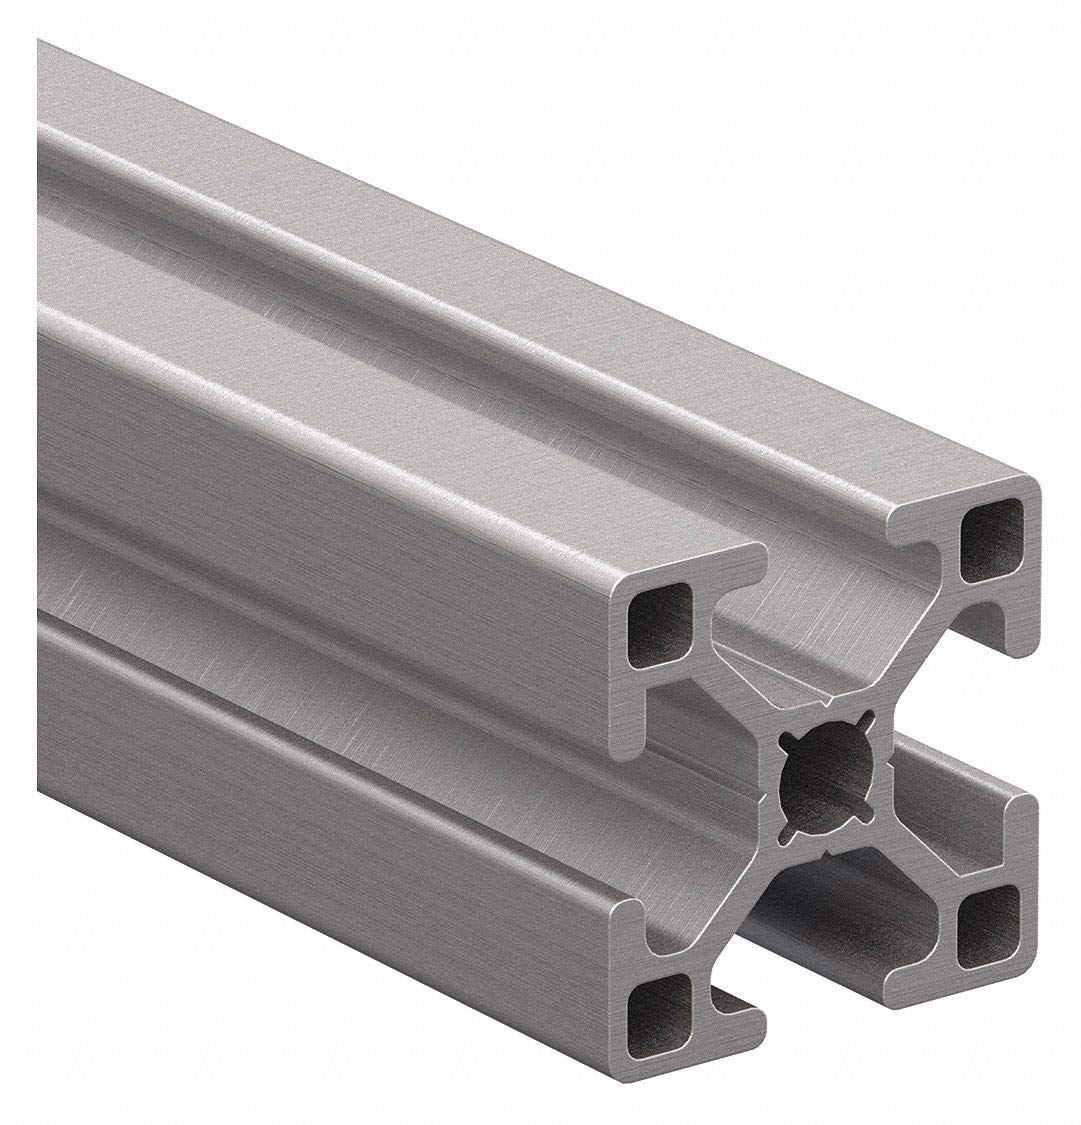 4 Meters Long x 30 mm Wide x 30 mm Deep, T-Slotted Aluminum Extrusion